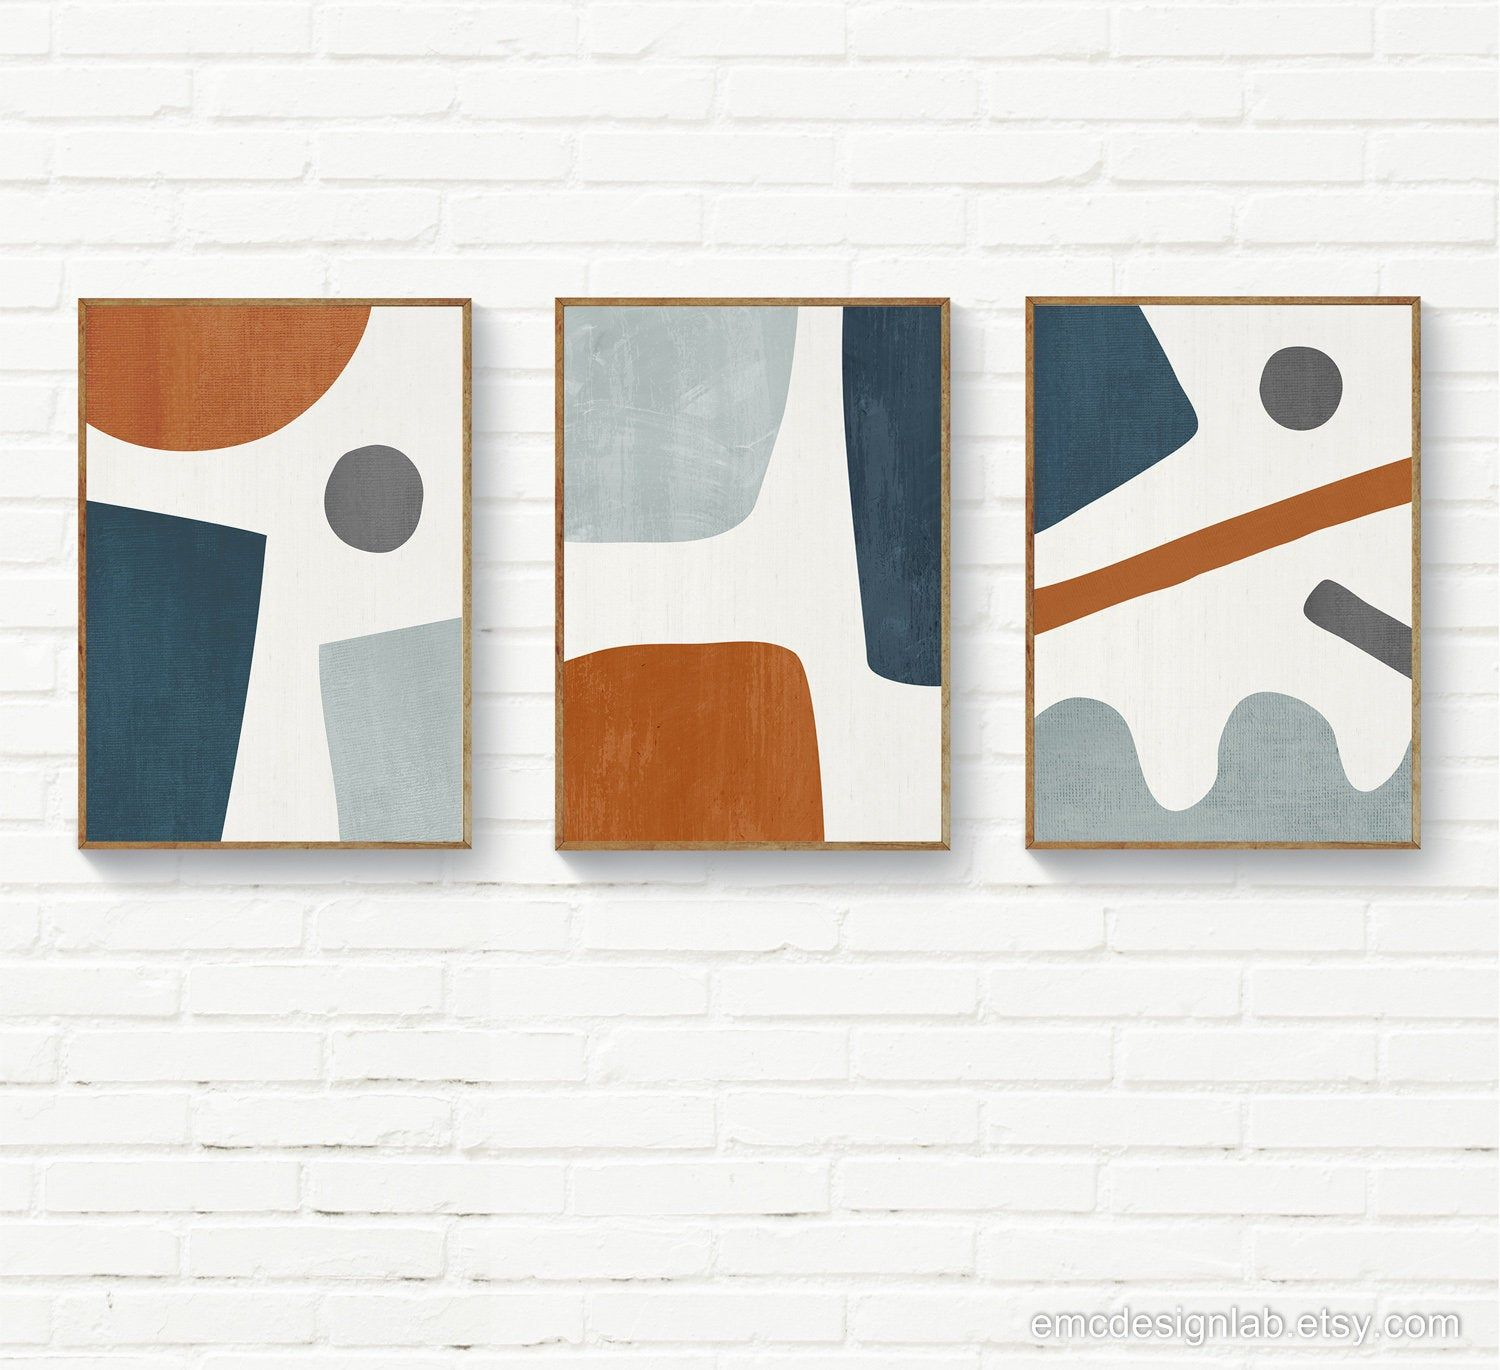 Set Of 3 Navy Burnt Orange Organic Shapes Wall Art Rust And Etsy In 2021 Etsy Wall Art Geometric Wall Art Modern Geometric Art